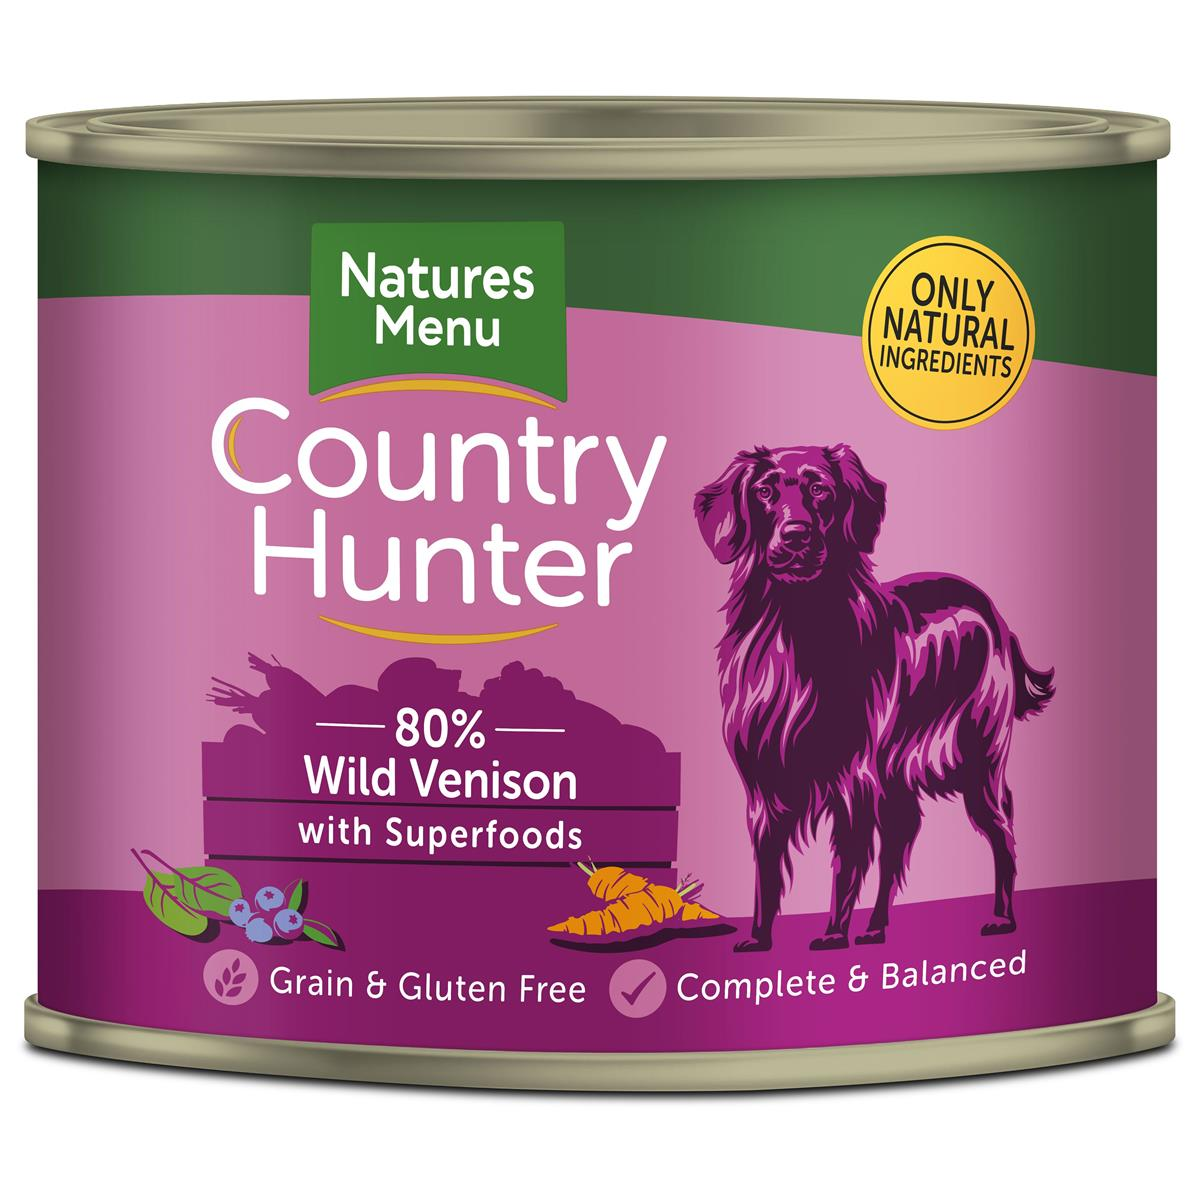 NM Boksemat Hund Country Hunter 80% Vilt & Blåbær 600g (6stk) PLOMME